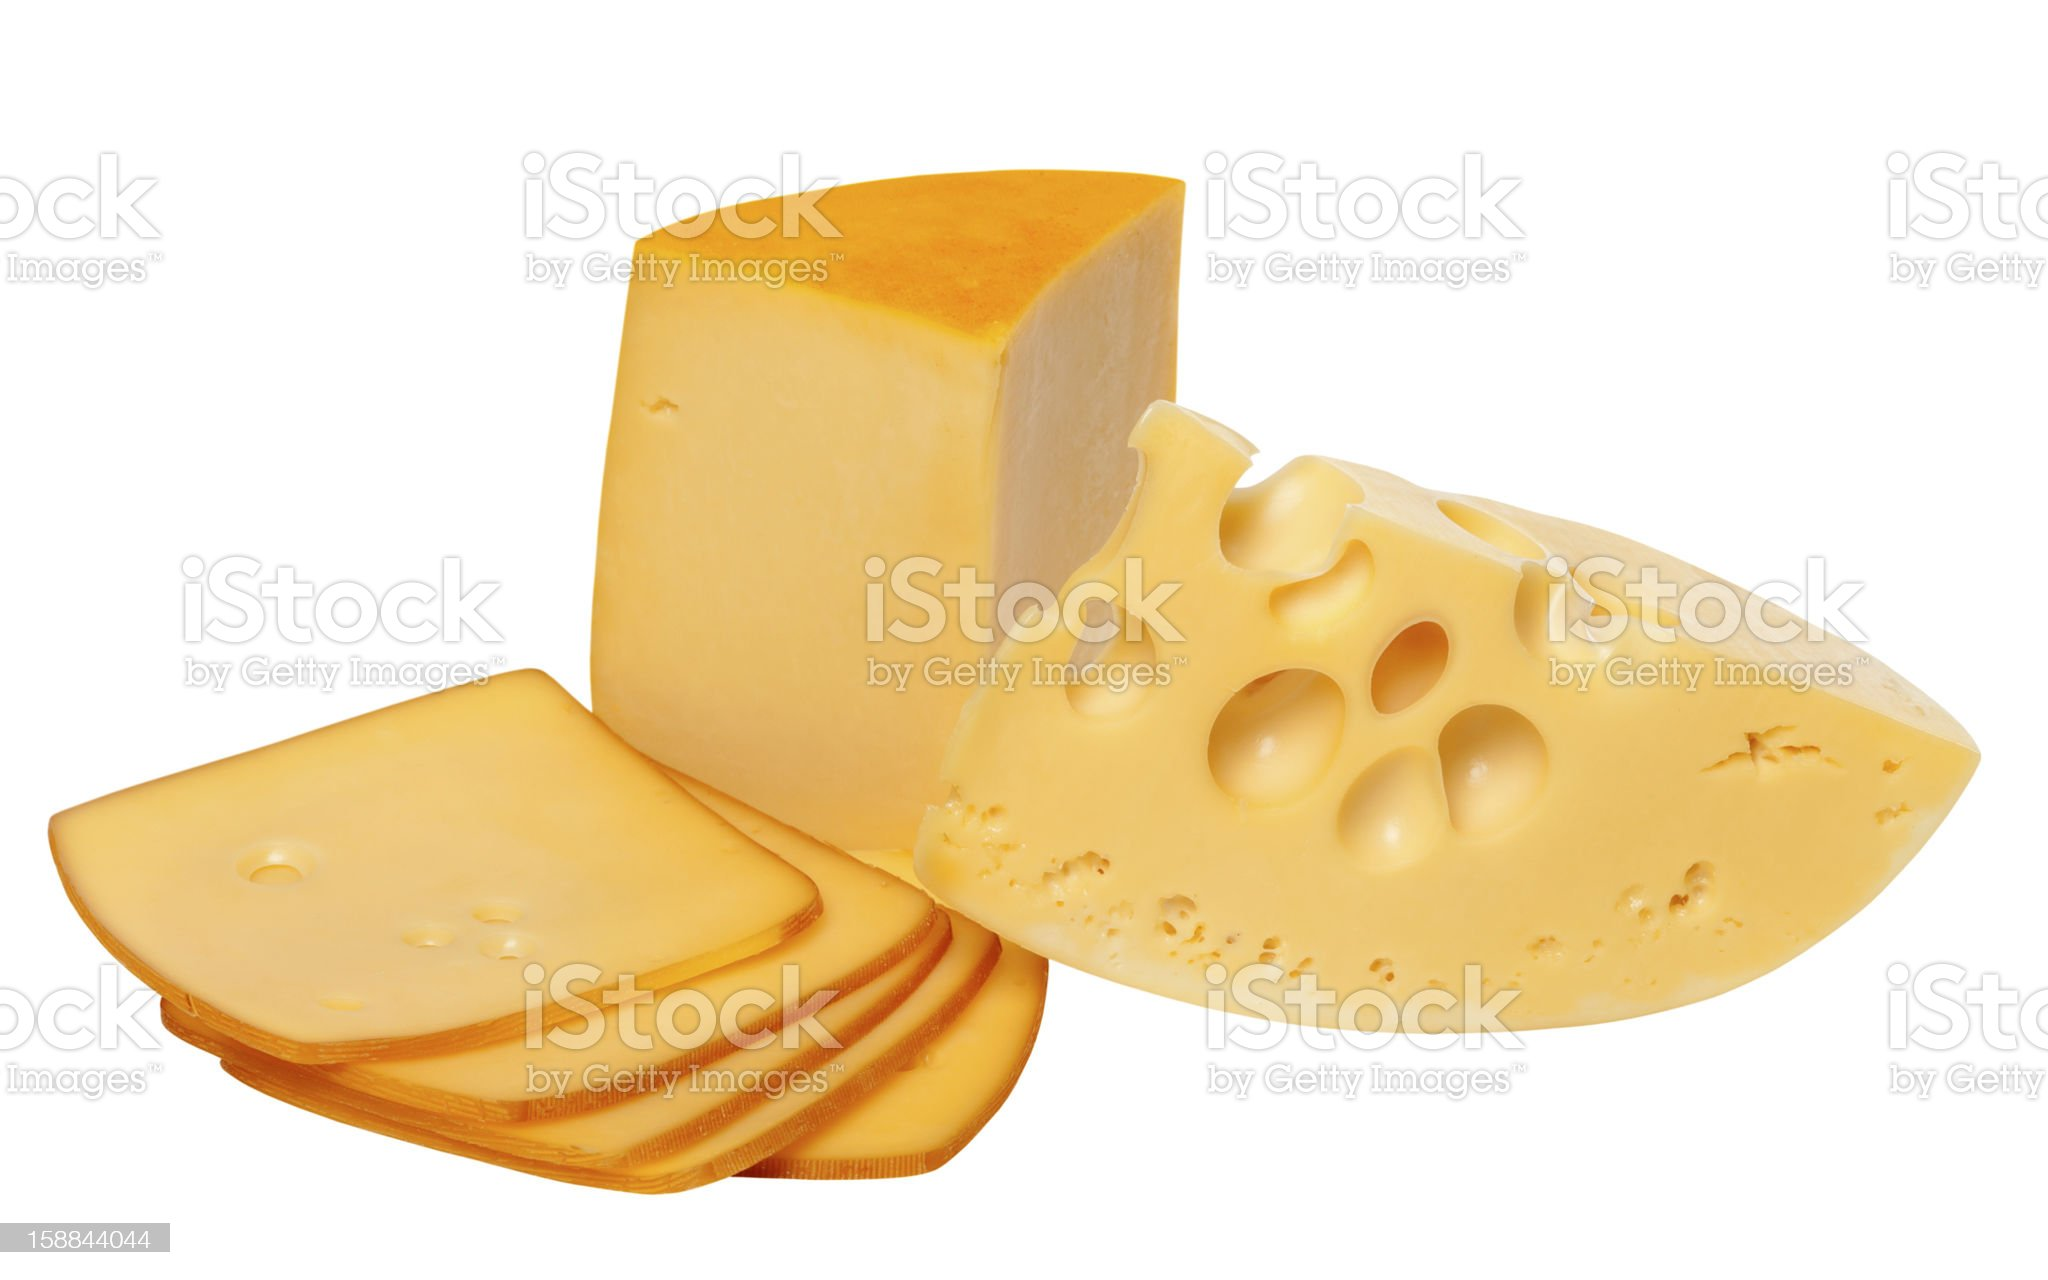 Pieces and slices of cheese royalty-free stock photo